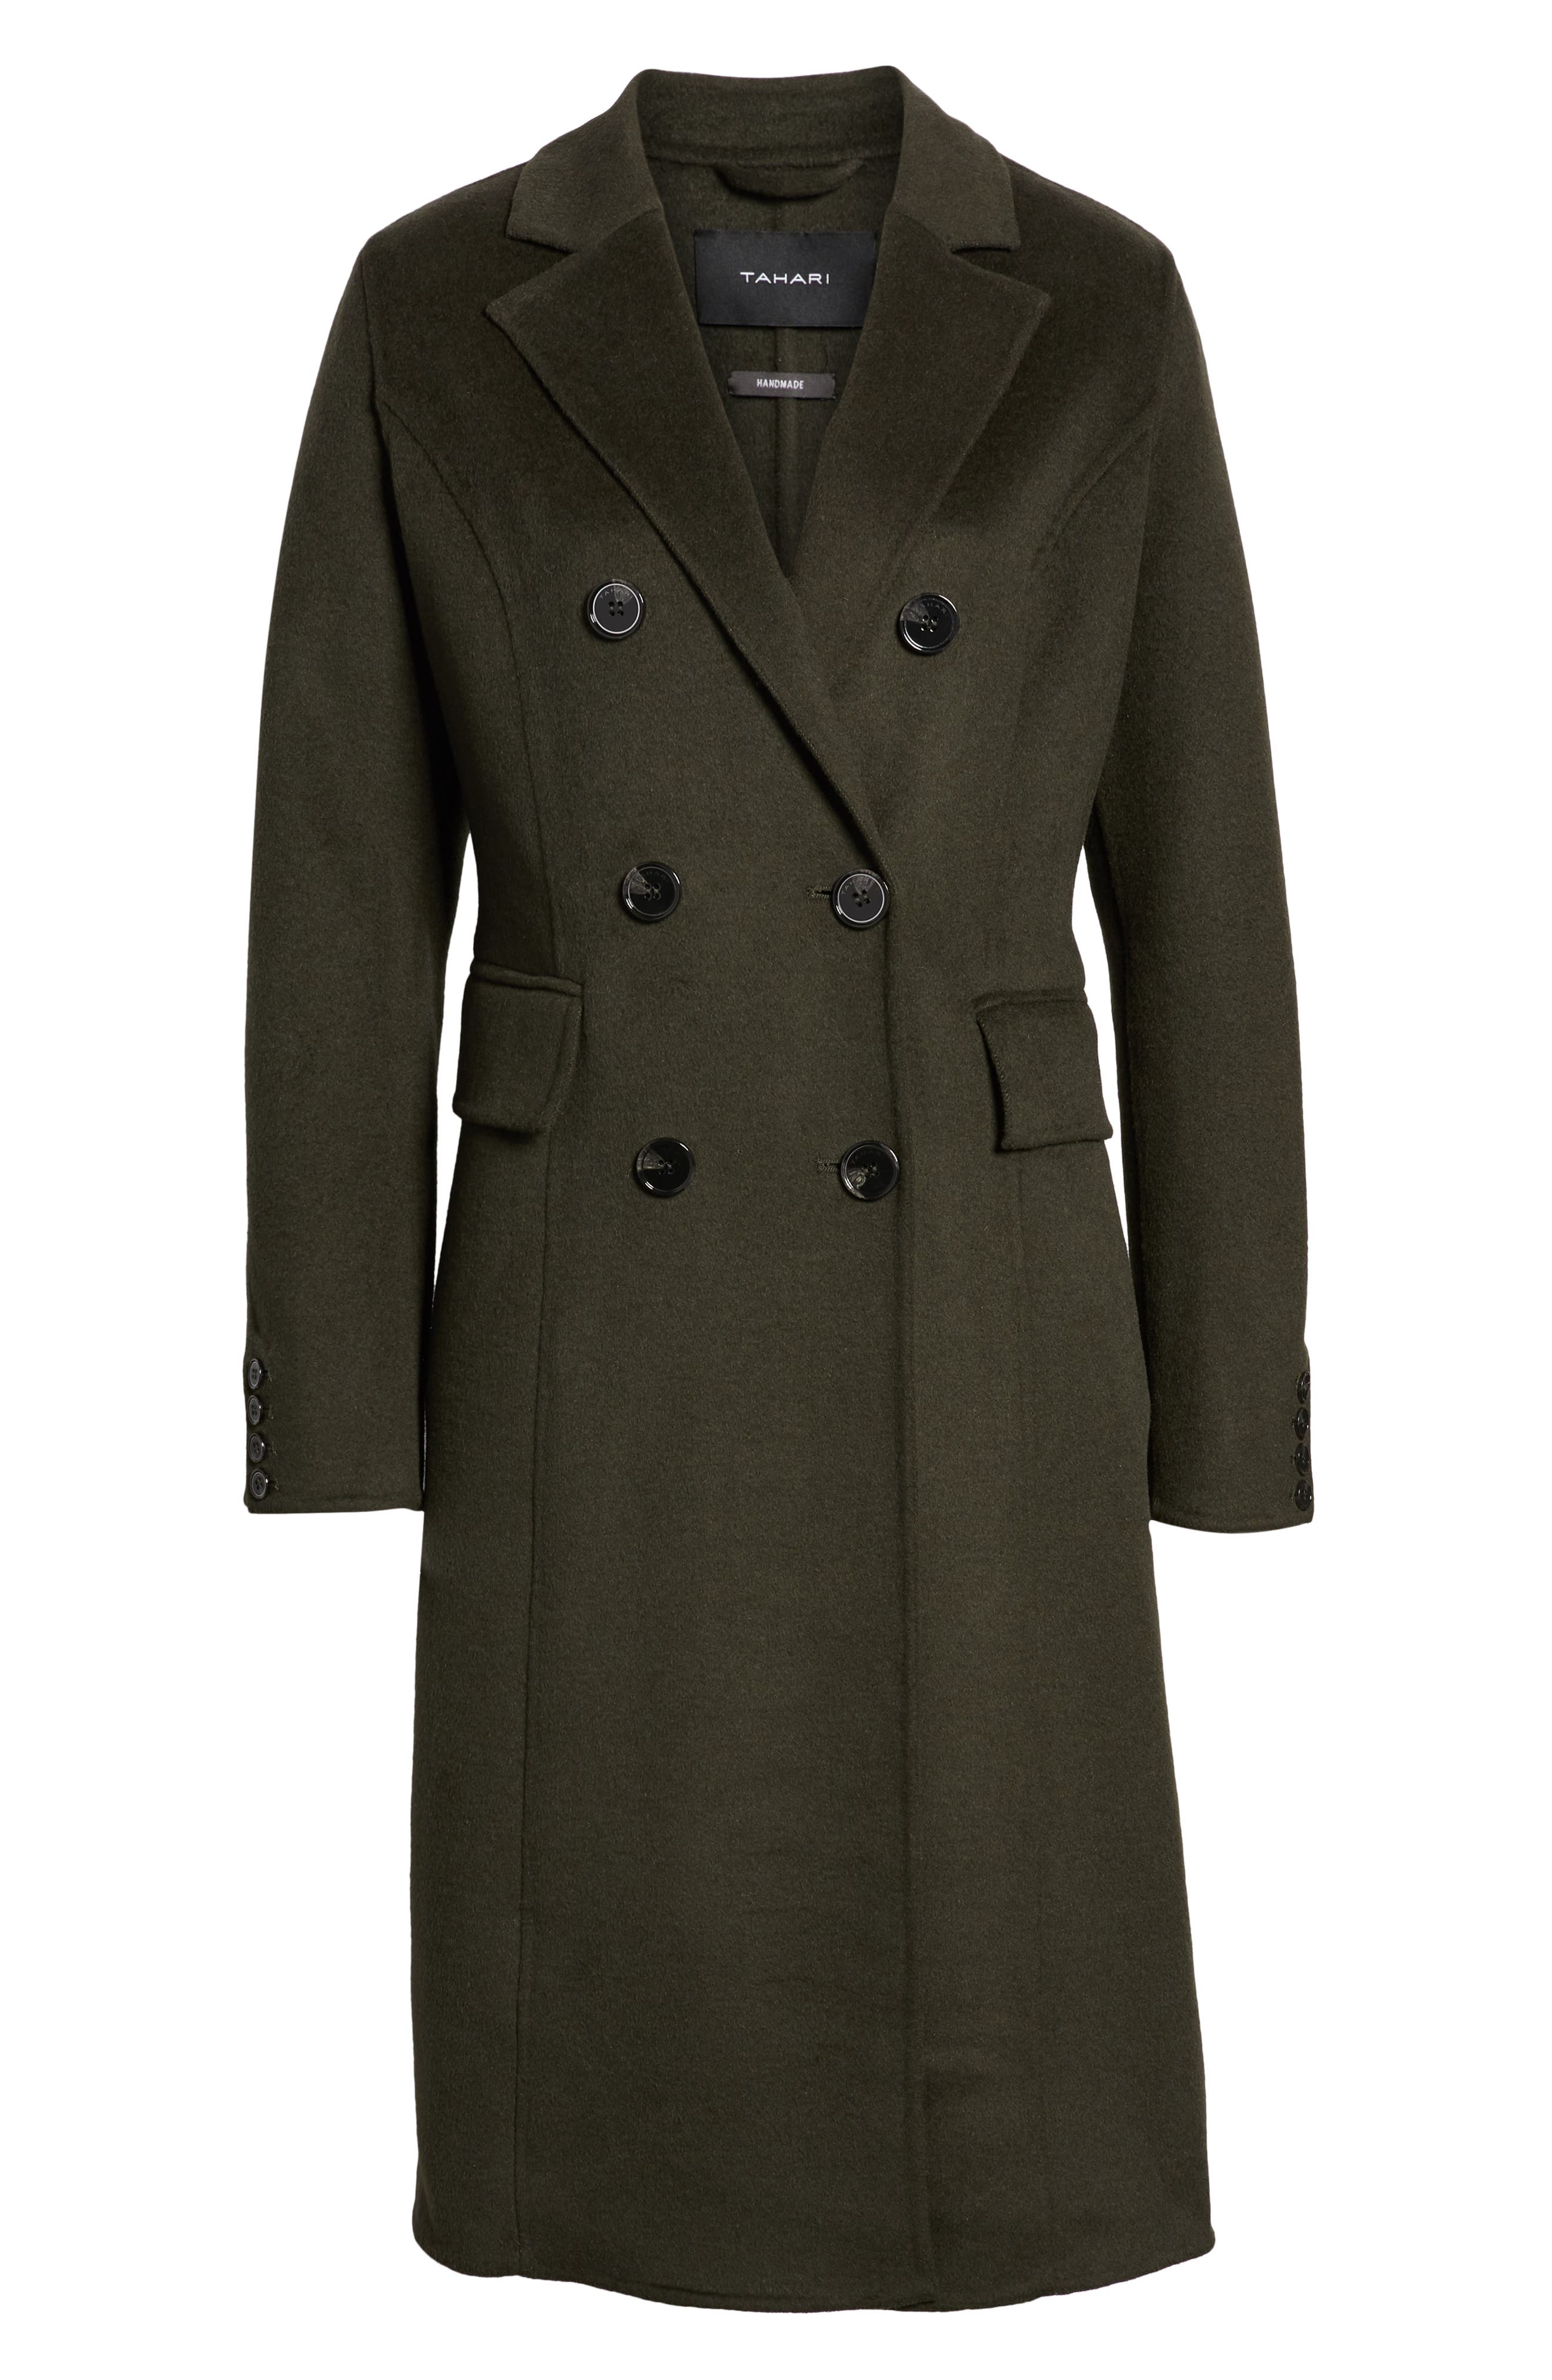 Taylor Double Breasted Wool Coat,                             Alternate thumbnail 6, color,                             300